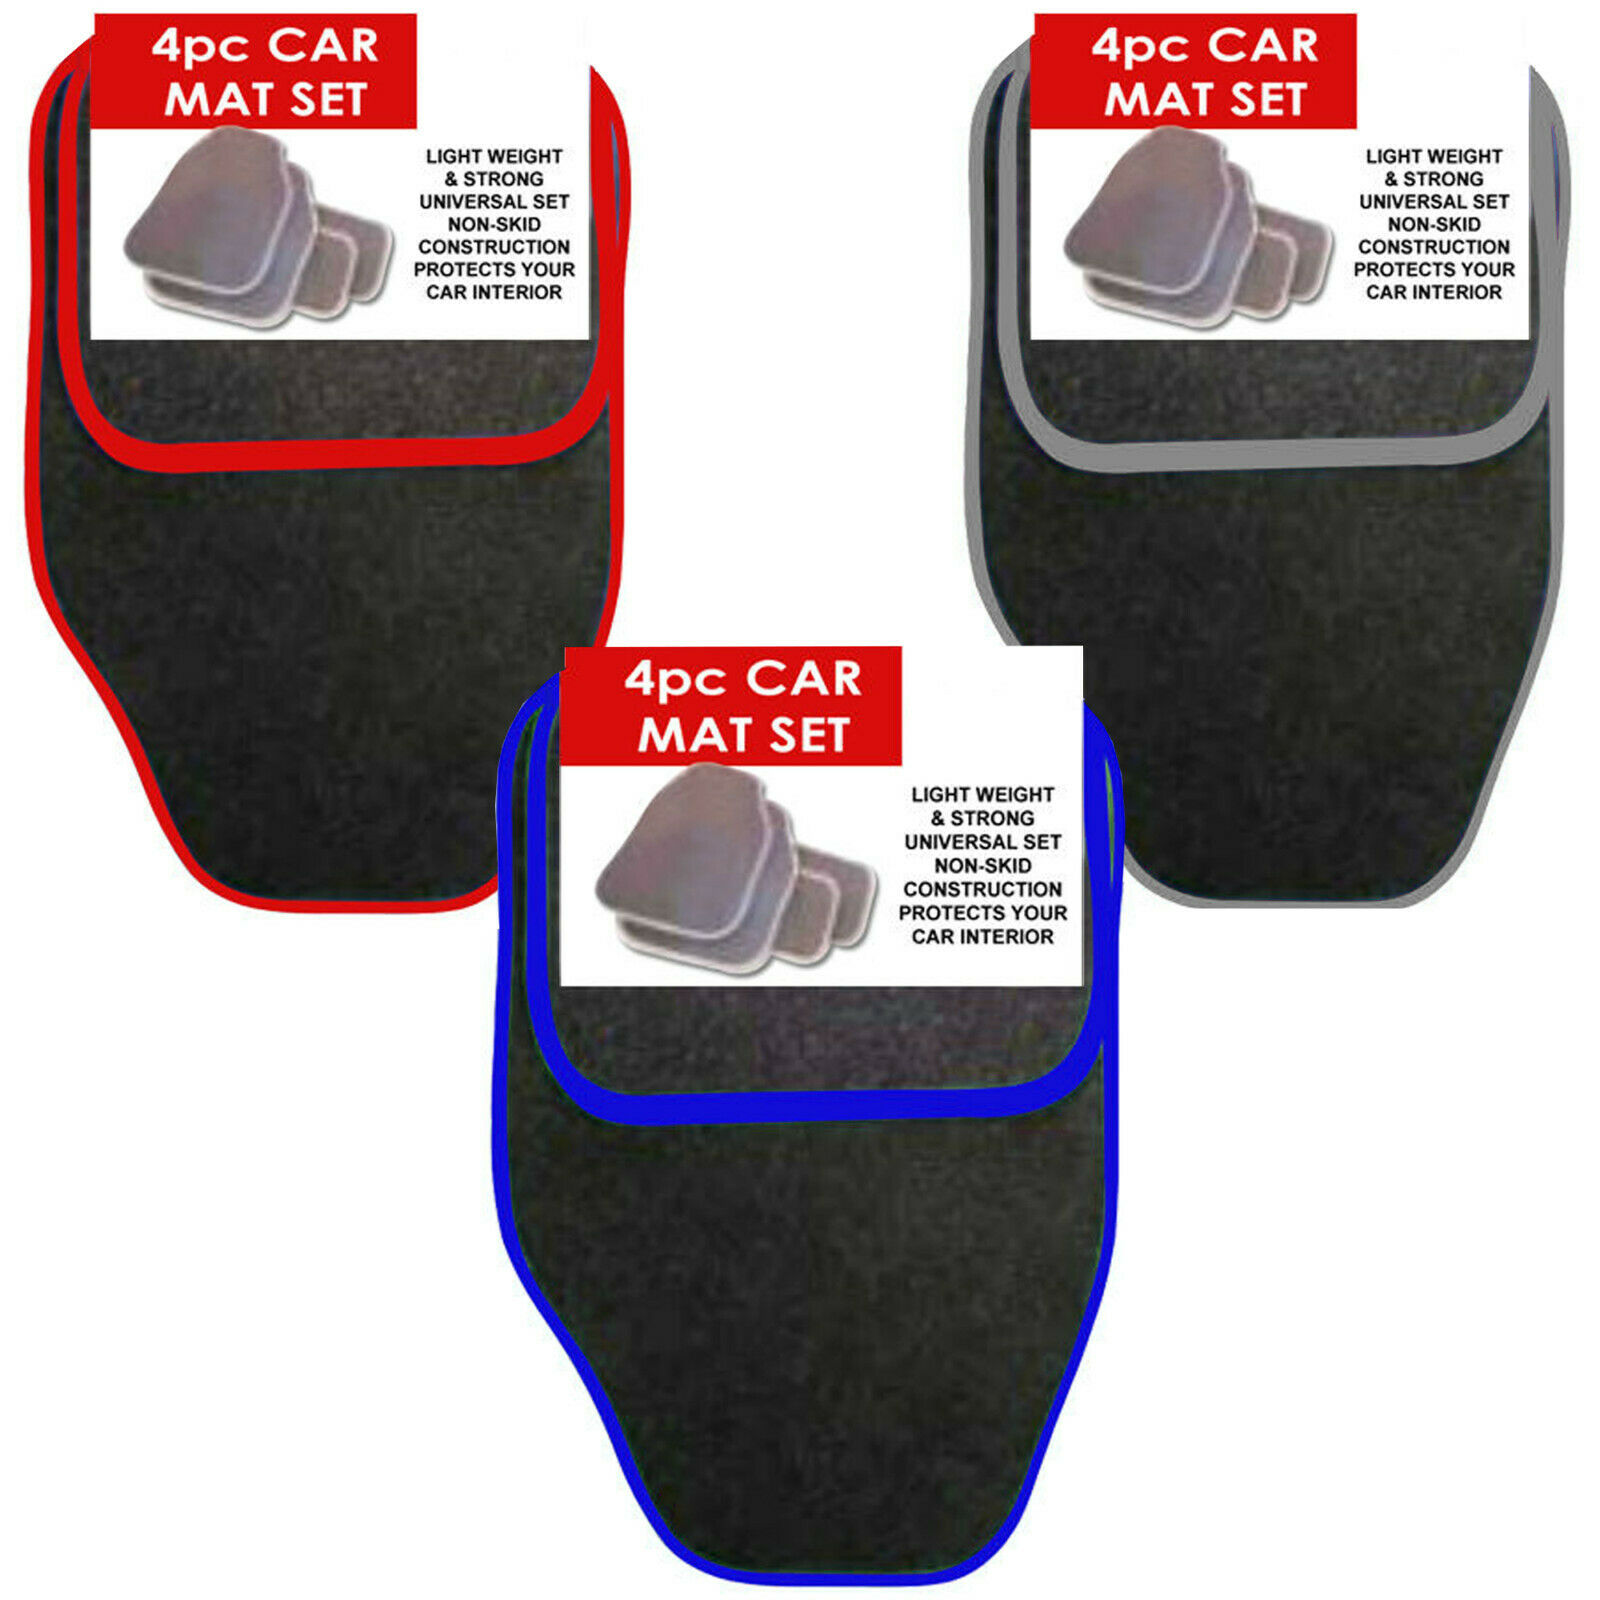 Car Parts - UNIVERSAL 4 PIECE FRONT AND REAR CAR VAN FLOOR MATS RUBBER BACKED CARPET